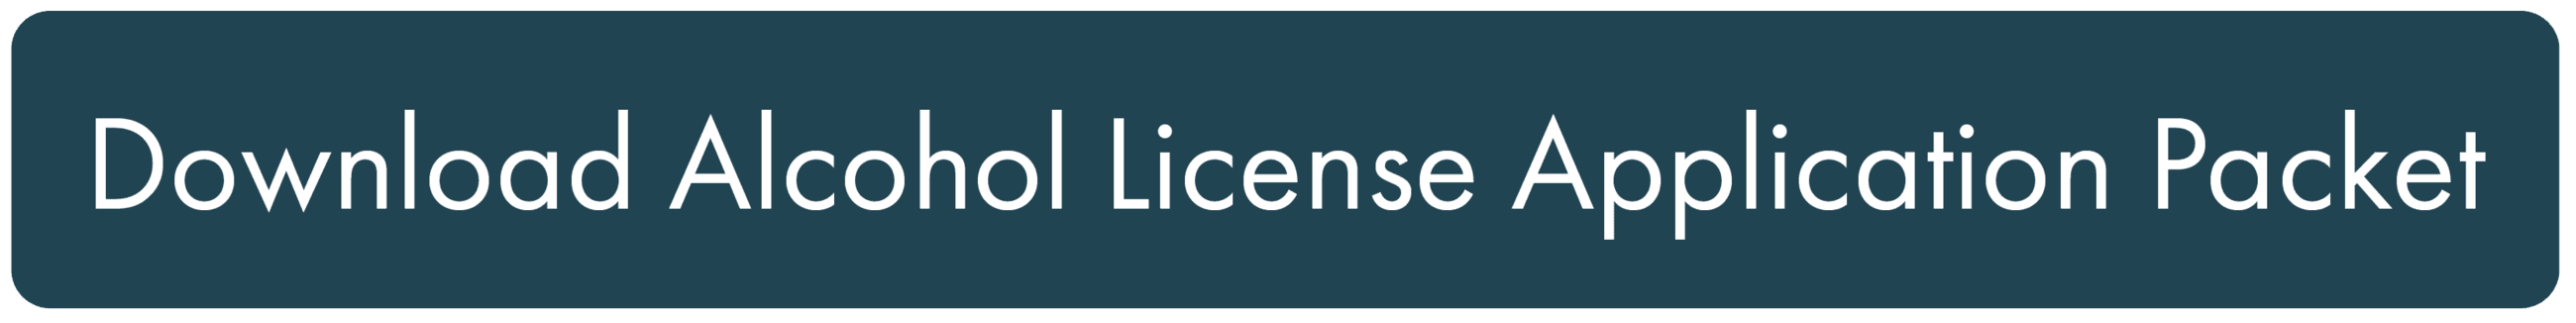 Download Alcohol License Application Packet